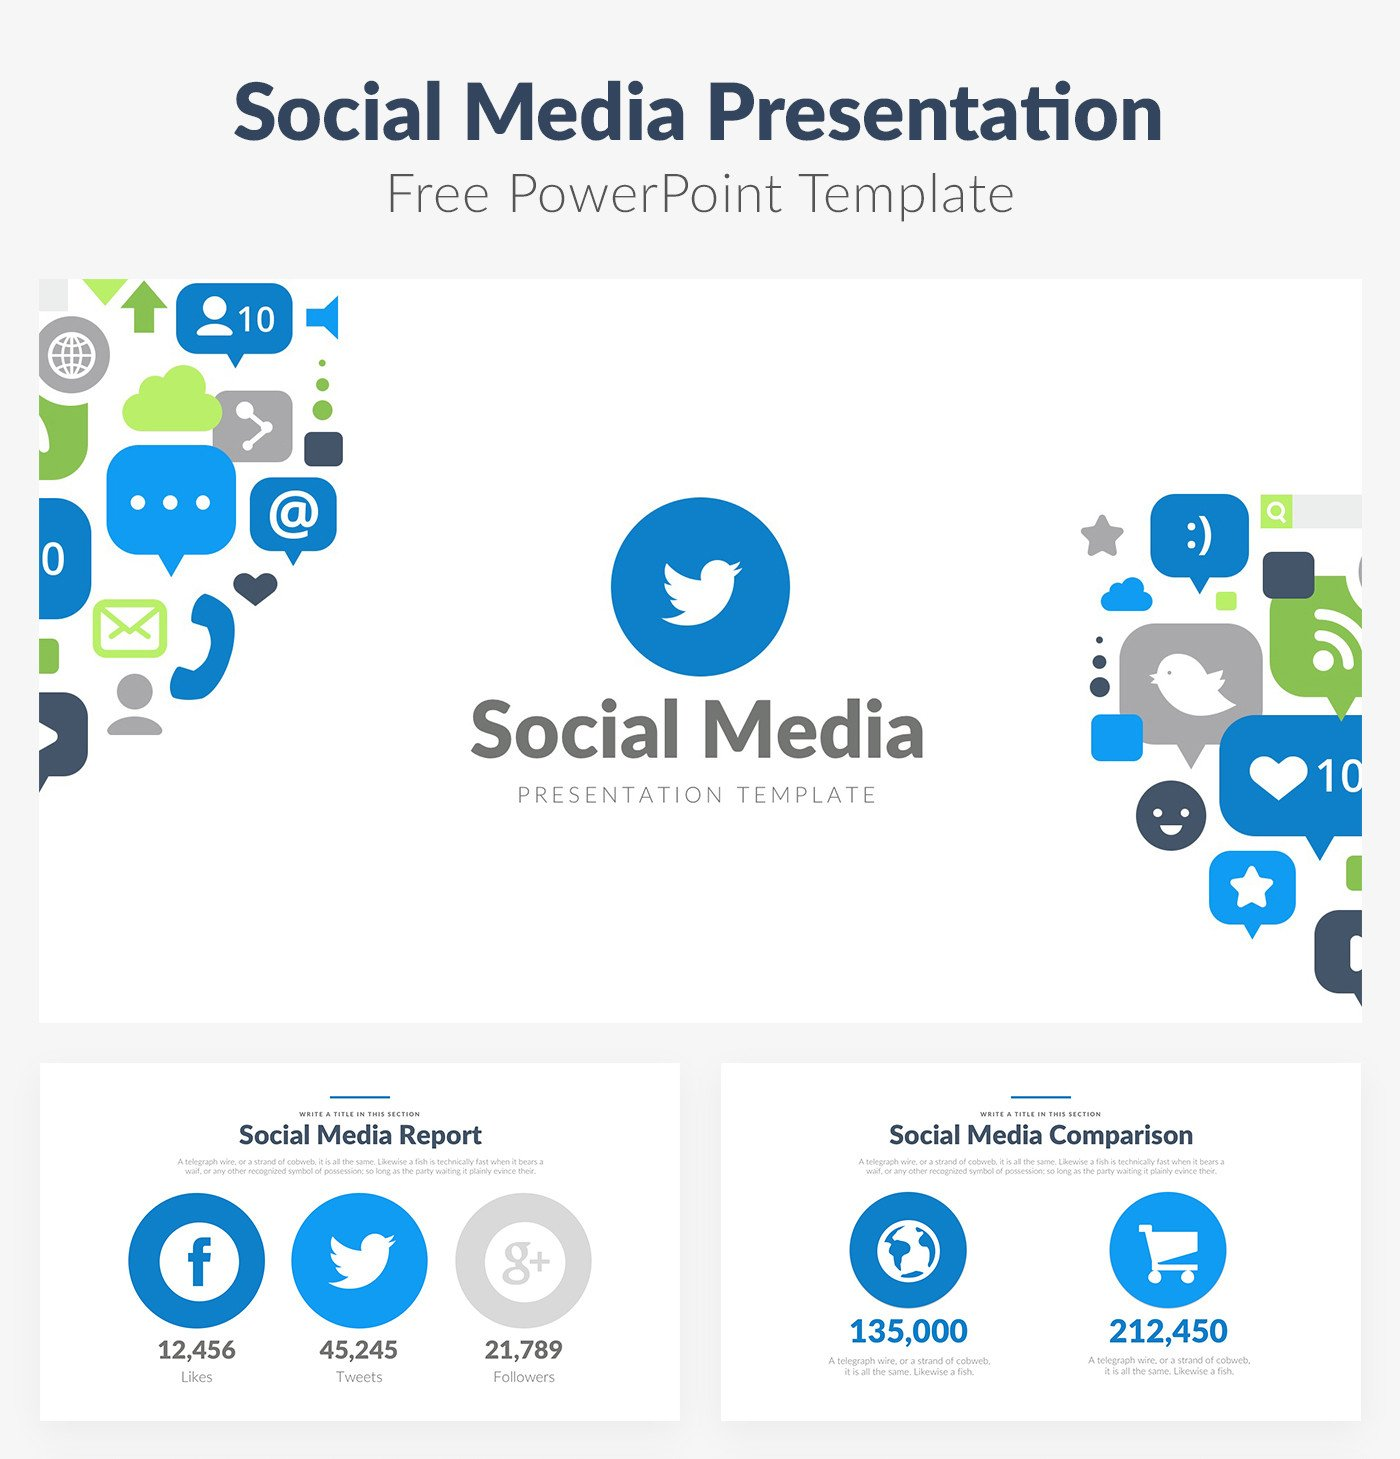 Social Media Ppt Templates 50 Best Free Cool Powerpoint Templates Of 2018 Updated